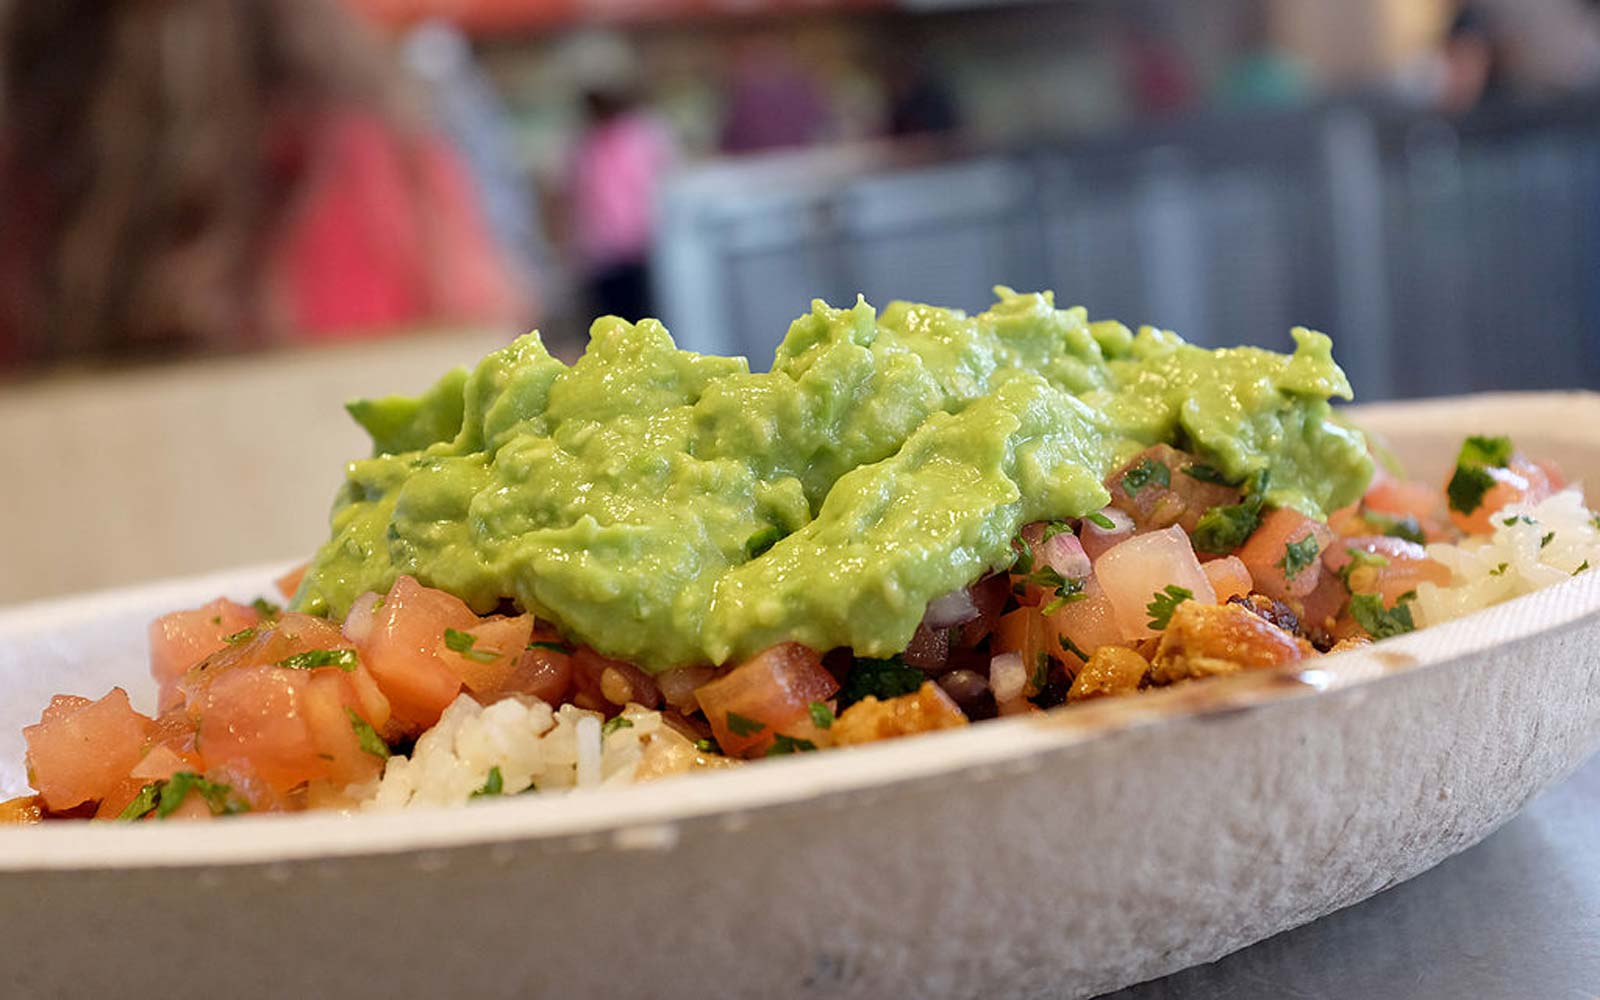 All the Restaurants Giving Away Free Guacamole for National Avocado Day Today